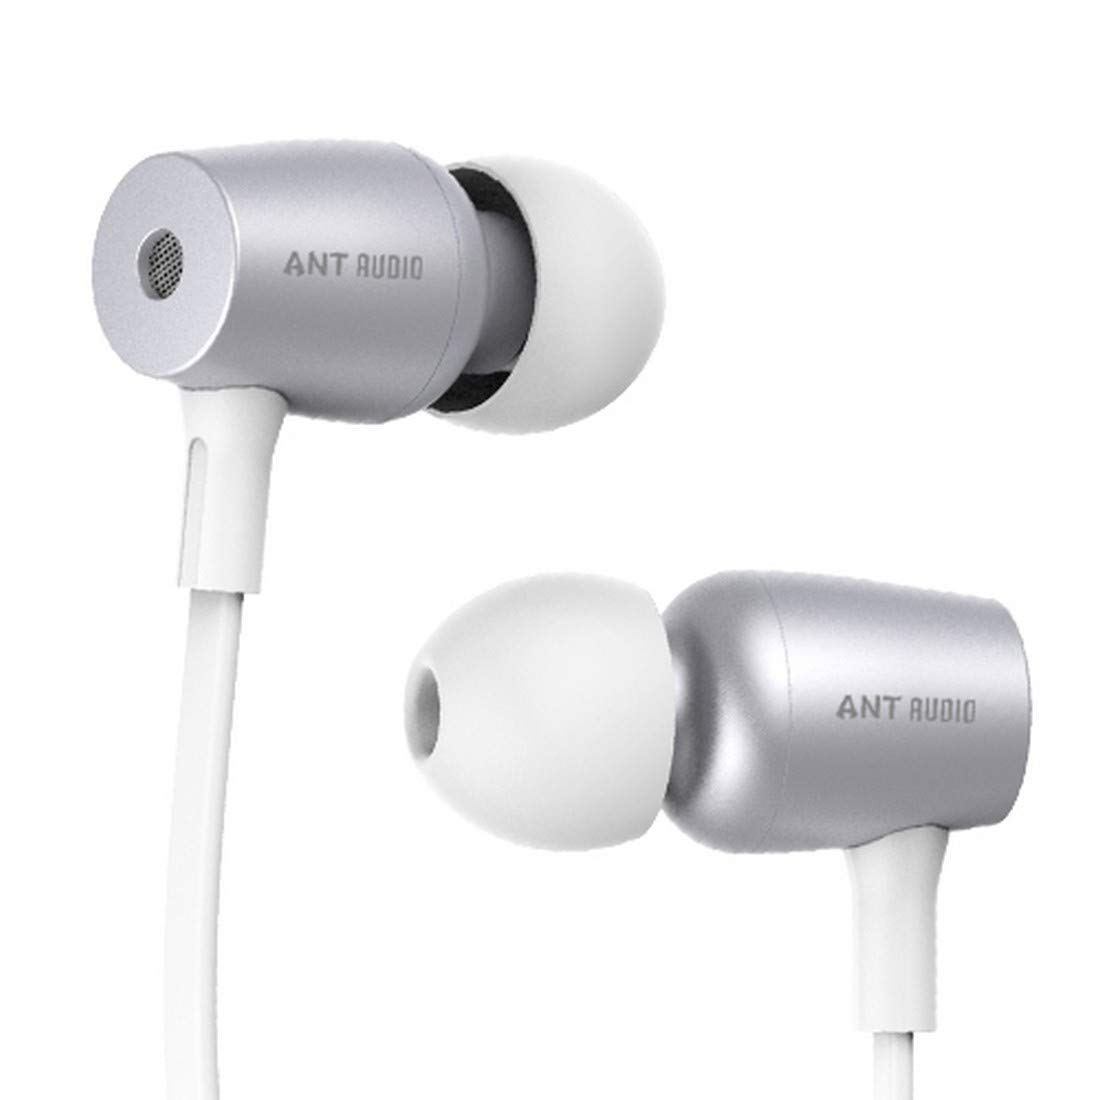 192eee857d7 Ant Audio Thump 504 Wired Portable Hi-Fi Earphone with Mic (White and  Silver): Buy Ant Audio Thump 504 Wired Portable Hi-Fi Earphone with Mic  (White and ...